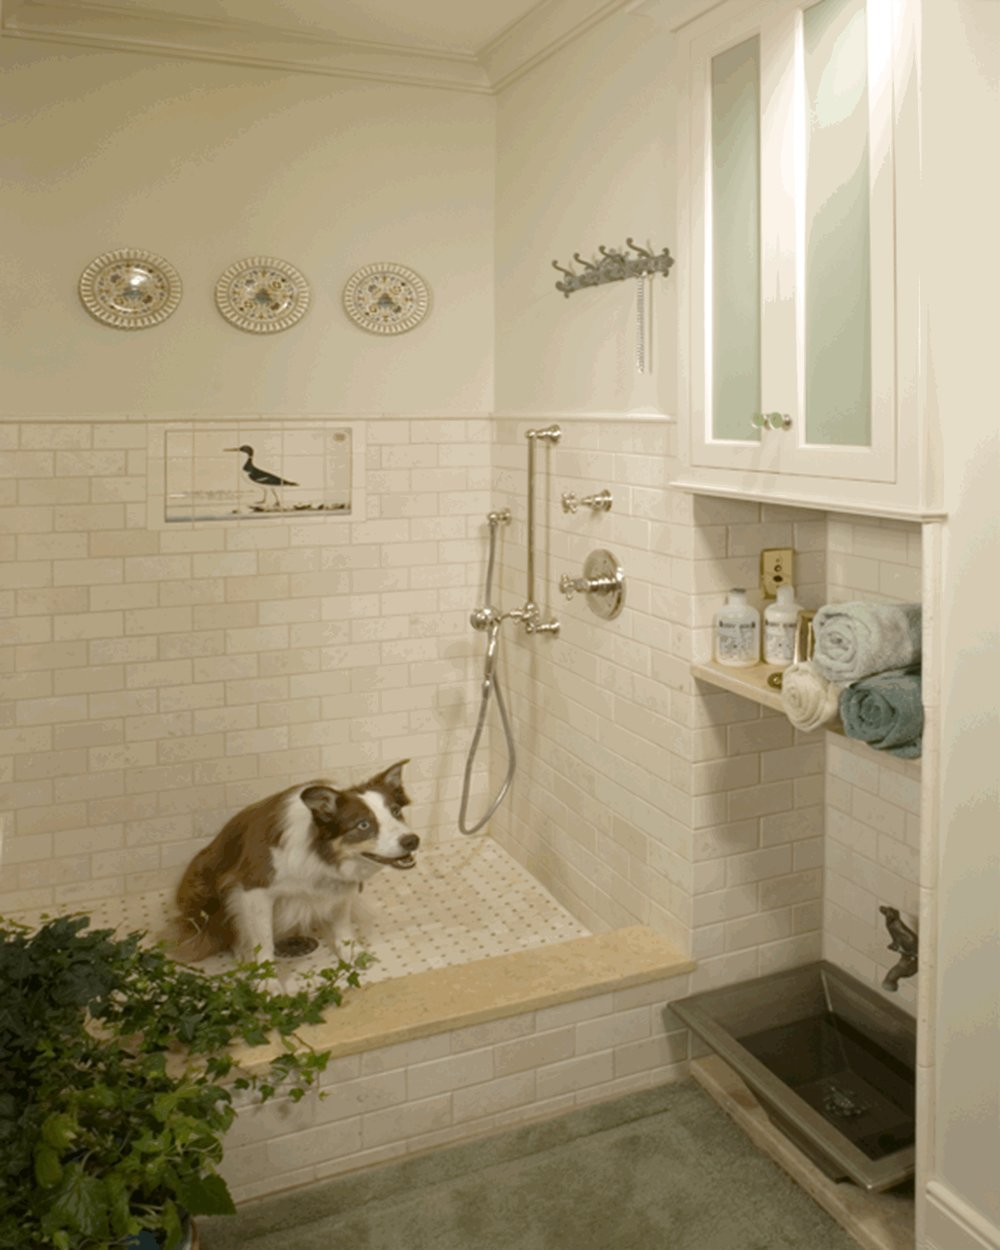 Dog Bathroom - Often we would like our four legged friends to have their own space to clean up and access to fresh drinking water. We enjoy designing spaces for all members of your family.